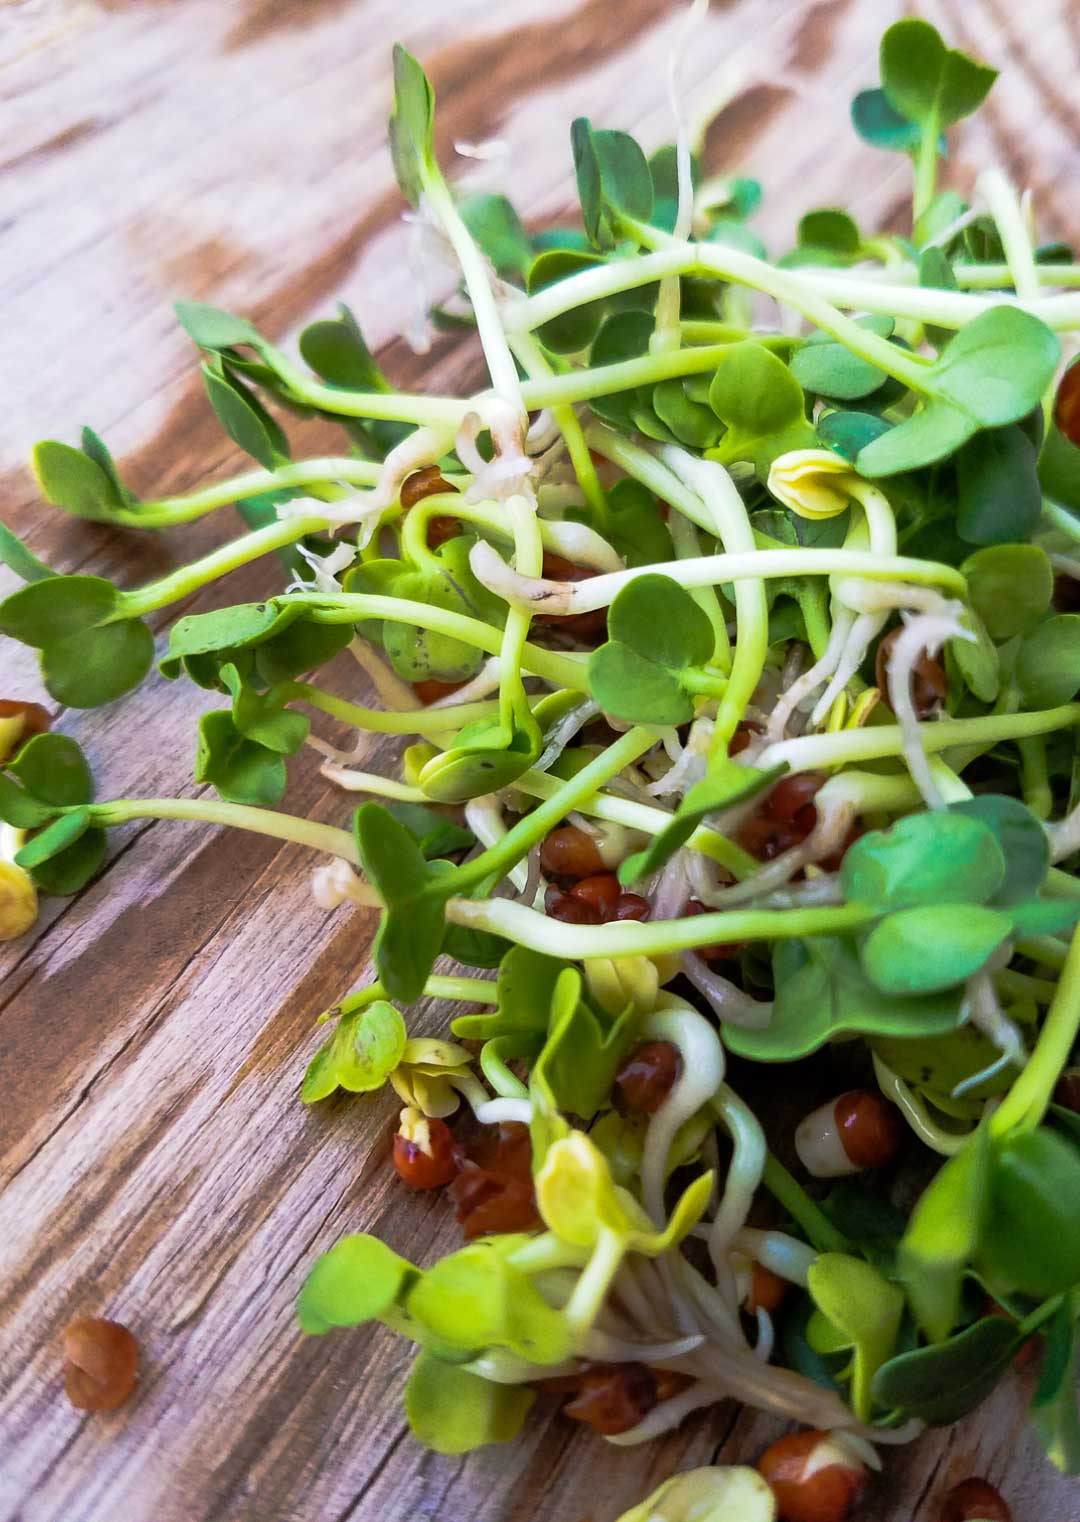 How To Sprout Radish Seeds   My mother called them mermaid hair... We never had a shortage of mermaid hair (aka alfalfa sprouts) in the fridge. Sprouts, essentially a micro-green, are insanely nutritious. Learn to grow your own, and you never have to be without healthy greens!   WildernessFamilyNaturals.com